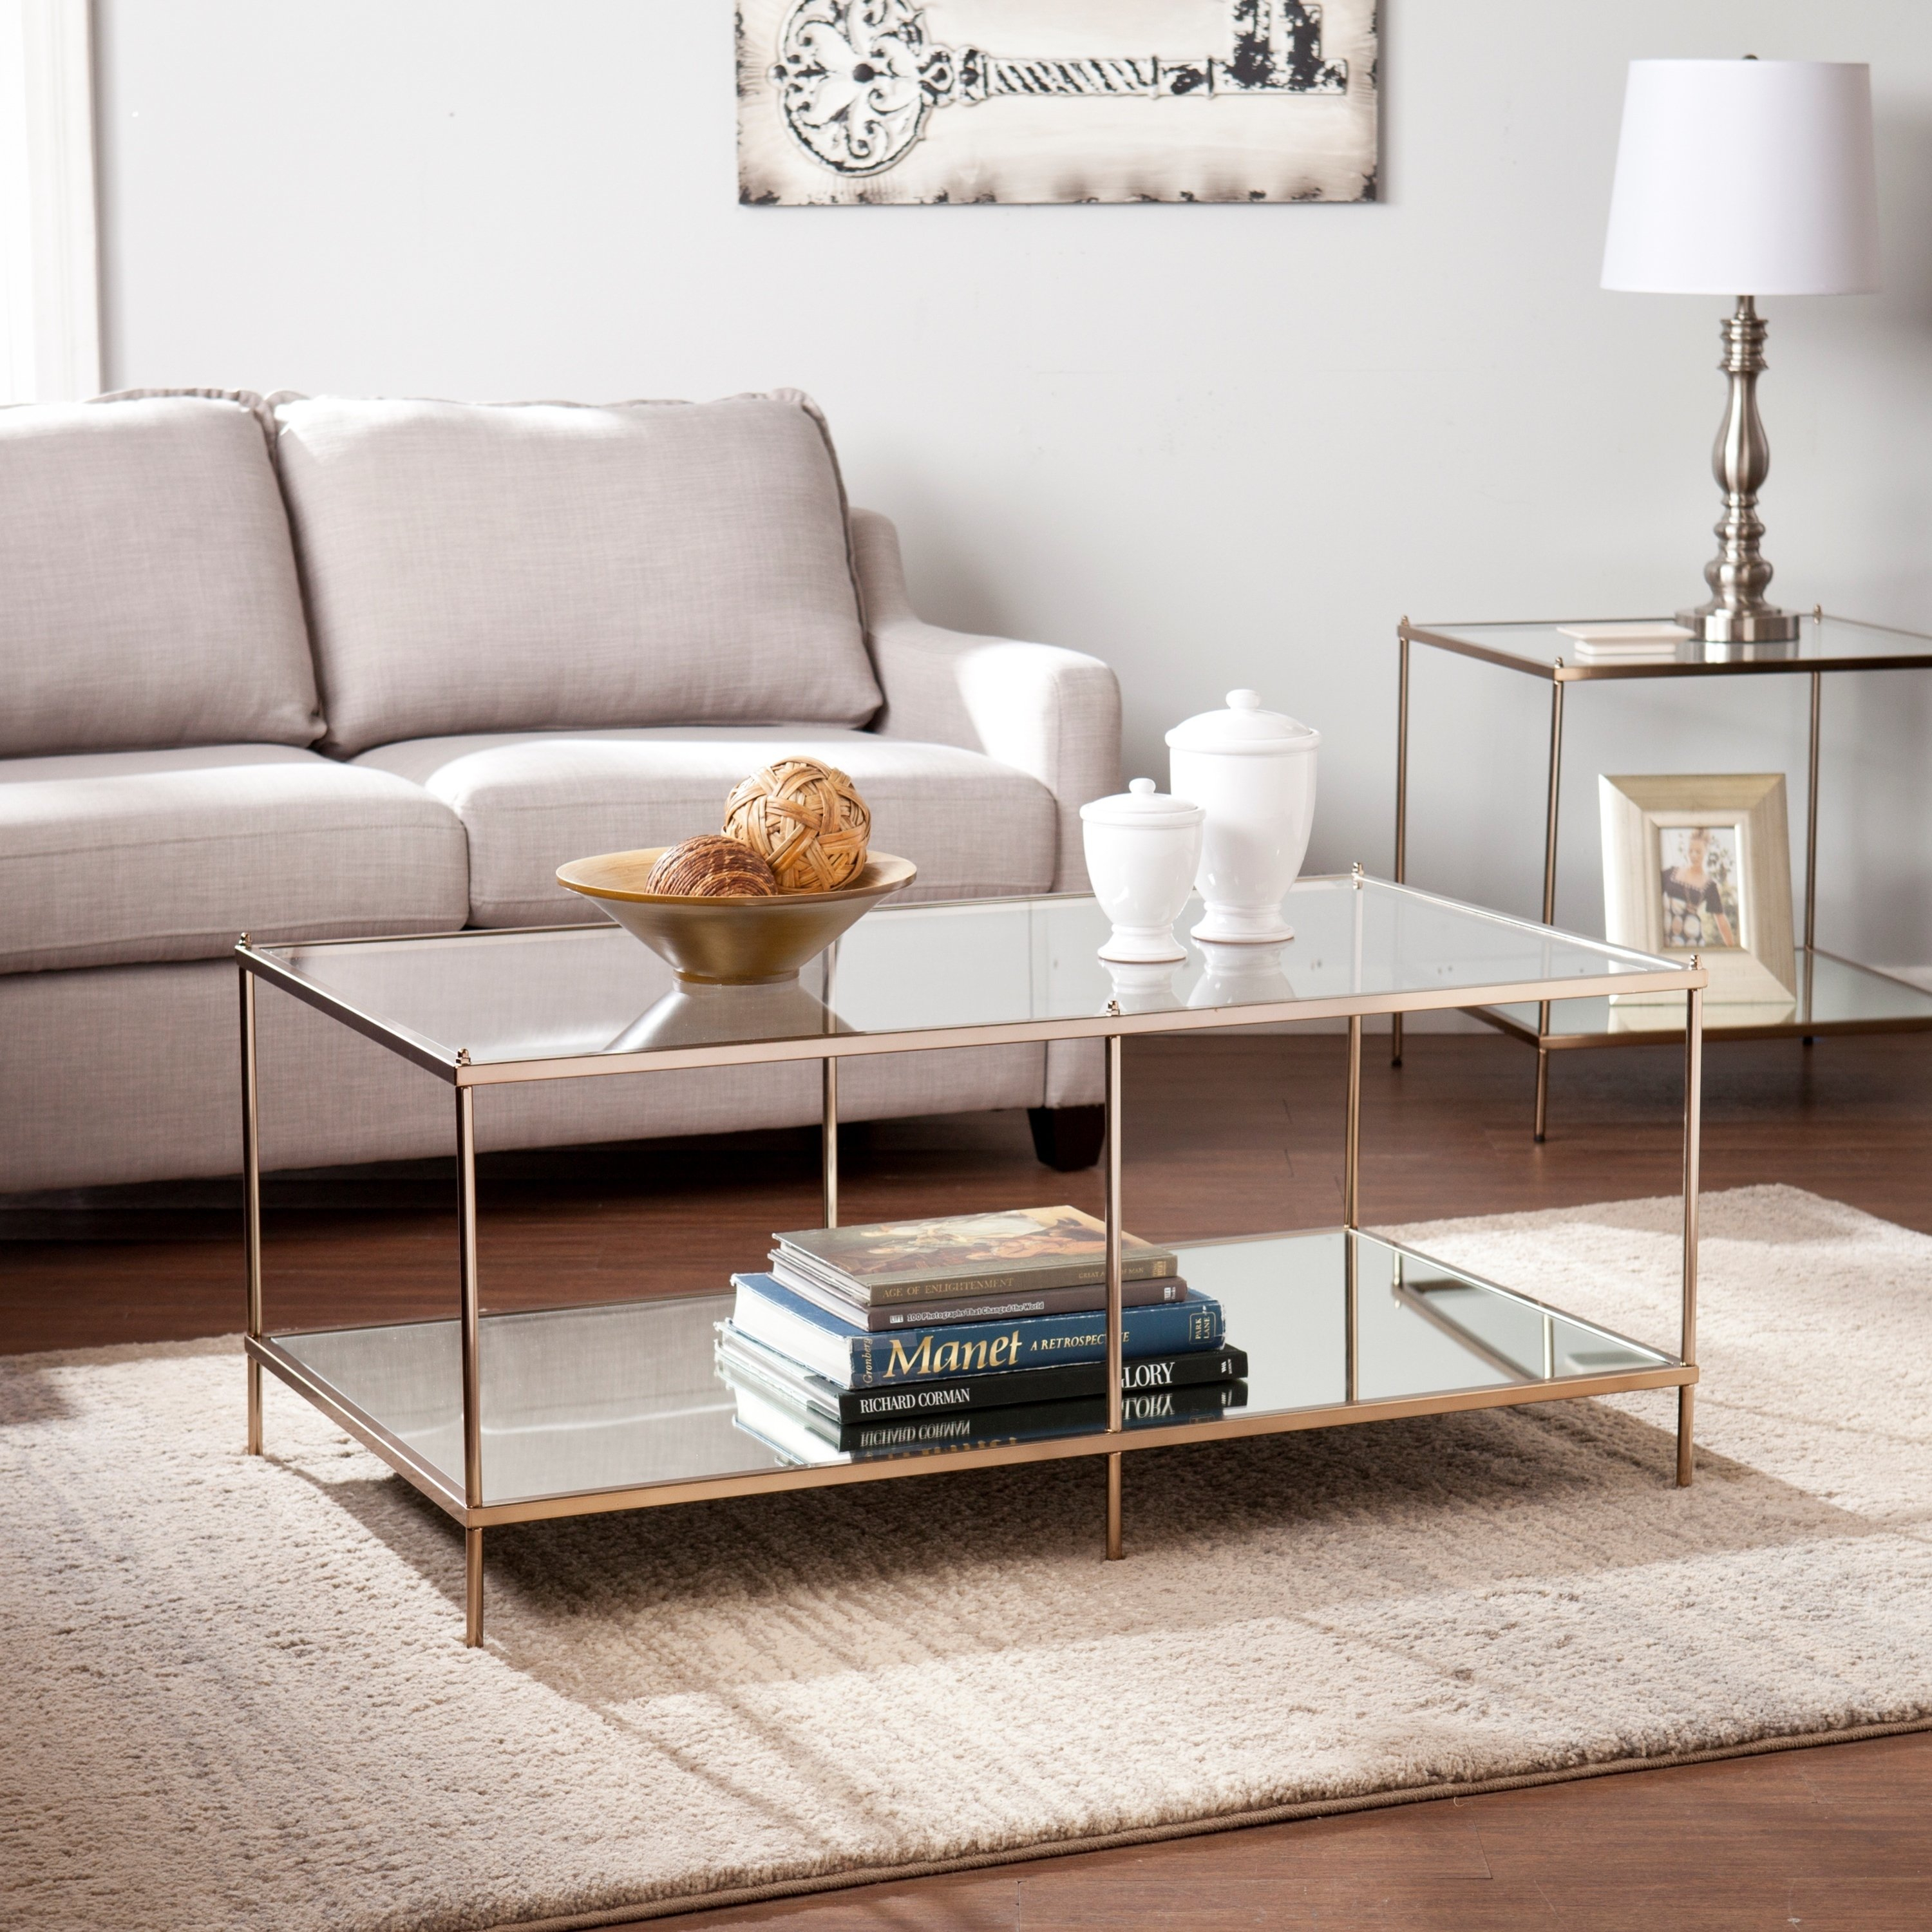 Shop Harper Blvd Kendall Goldtone Glass Top Coffee Table – Free In Harper Down Oversized Sofa Chairs (Image 19 of 20)